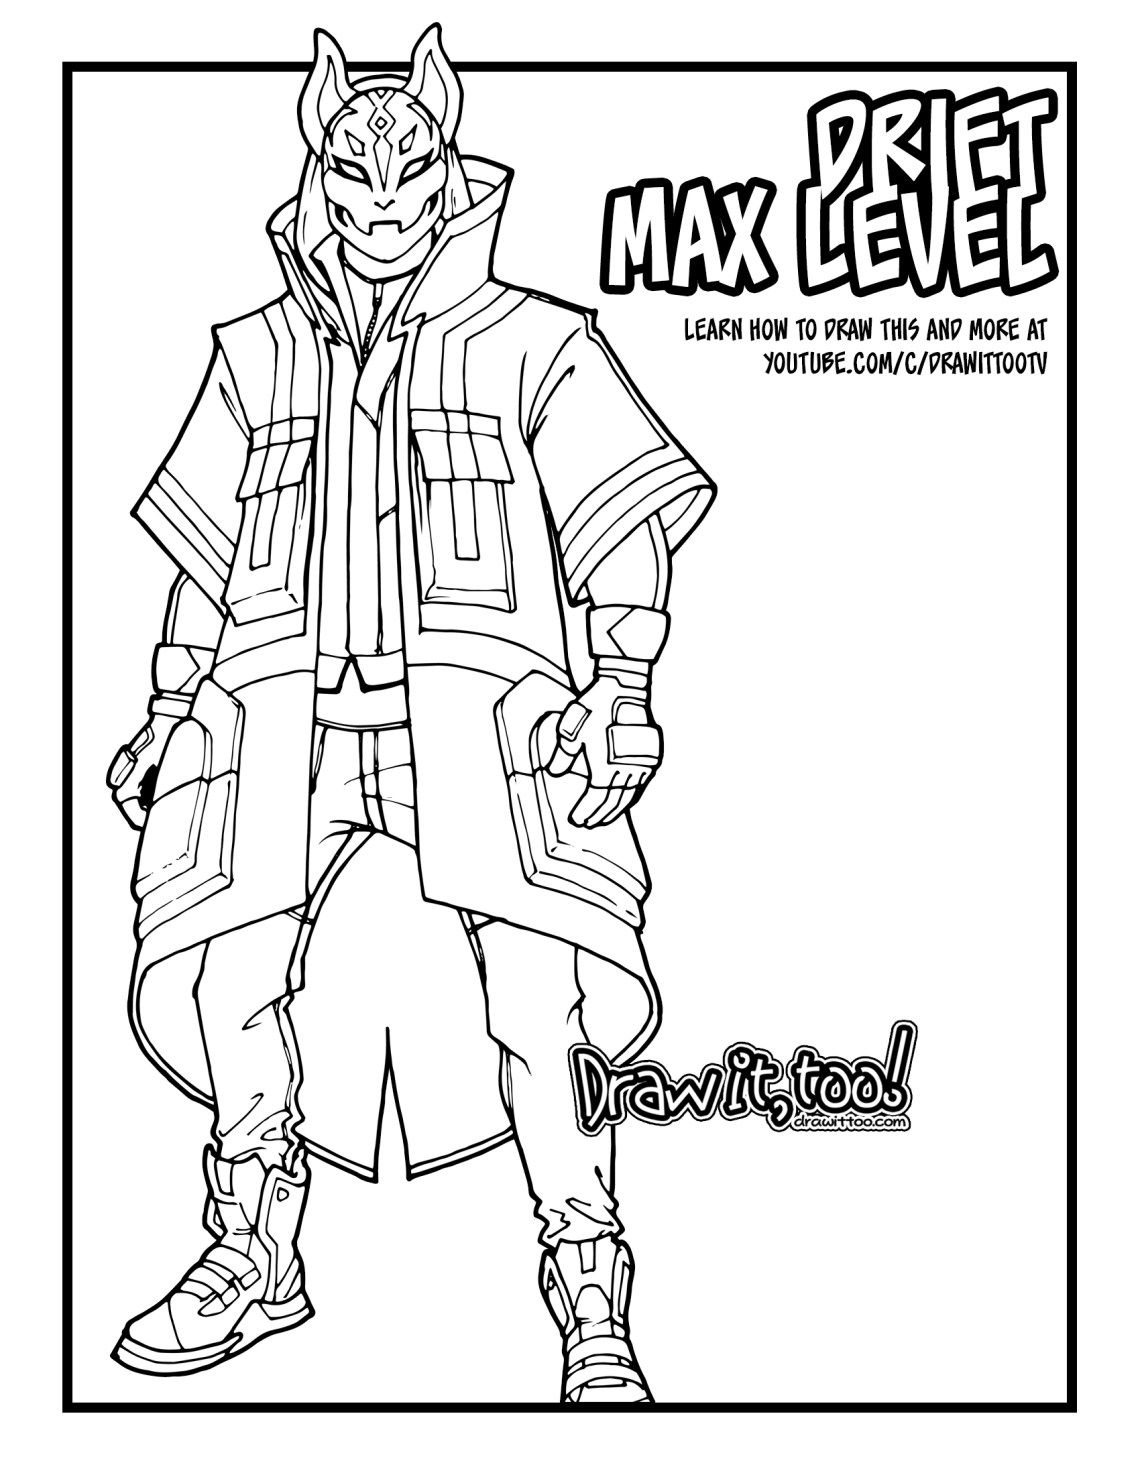 How to Draw Max Level Drift  Fortnite Coloring Pages  Coloring